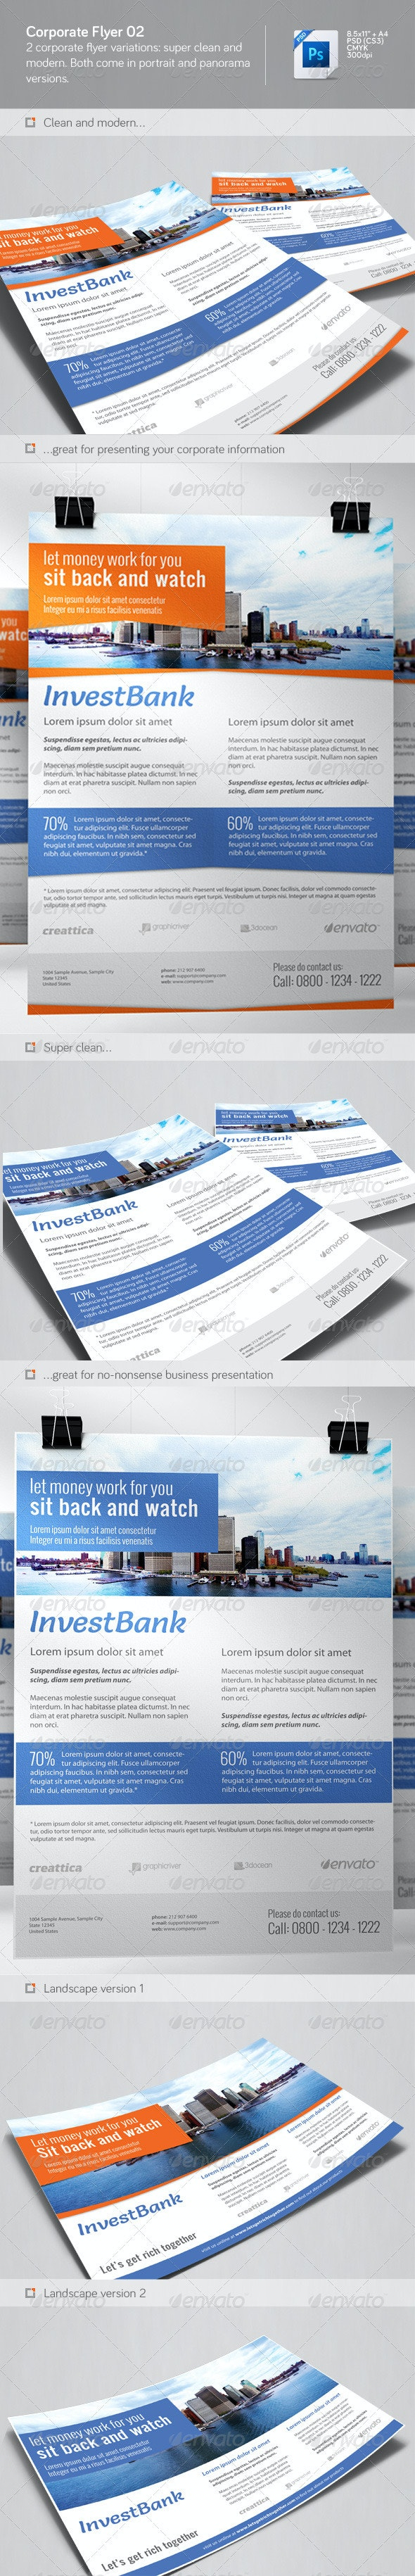 Corporate Flyer 02 - Corporate Flyers